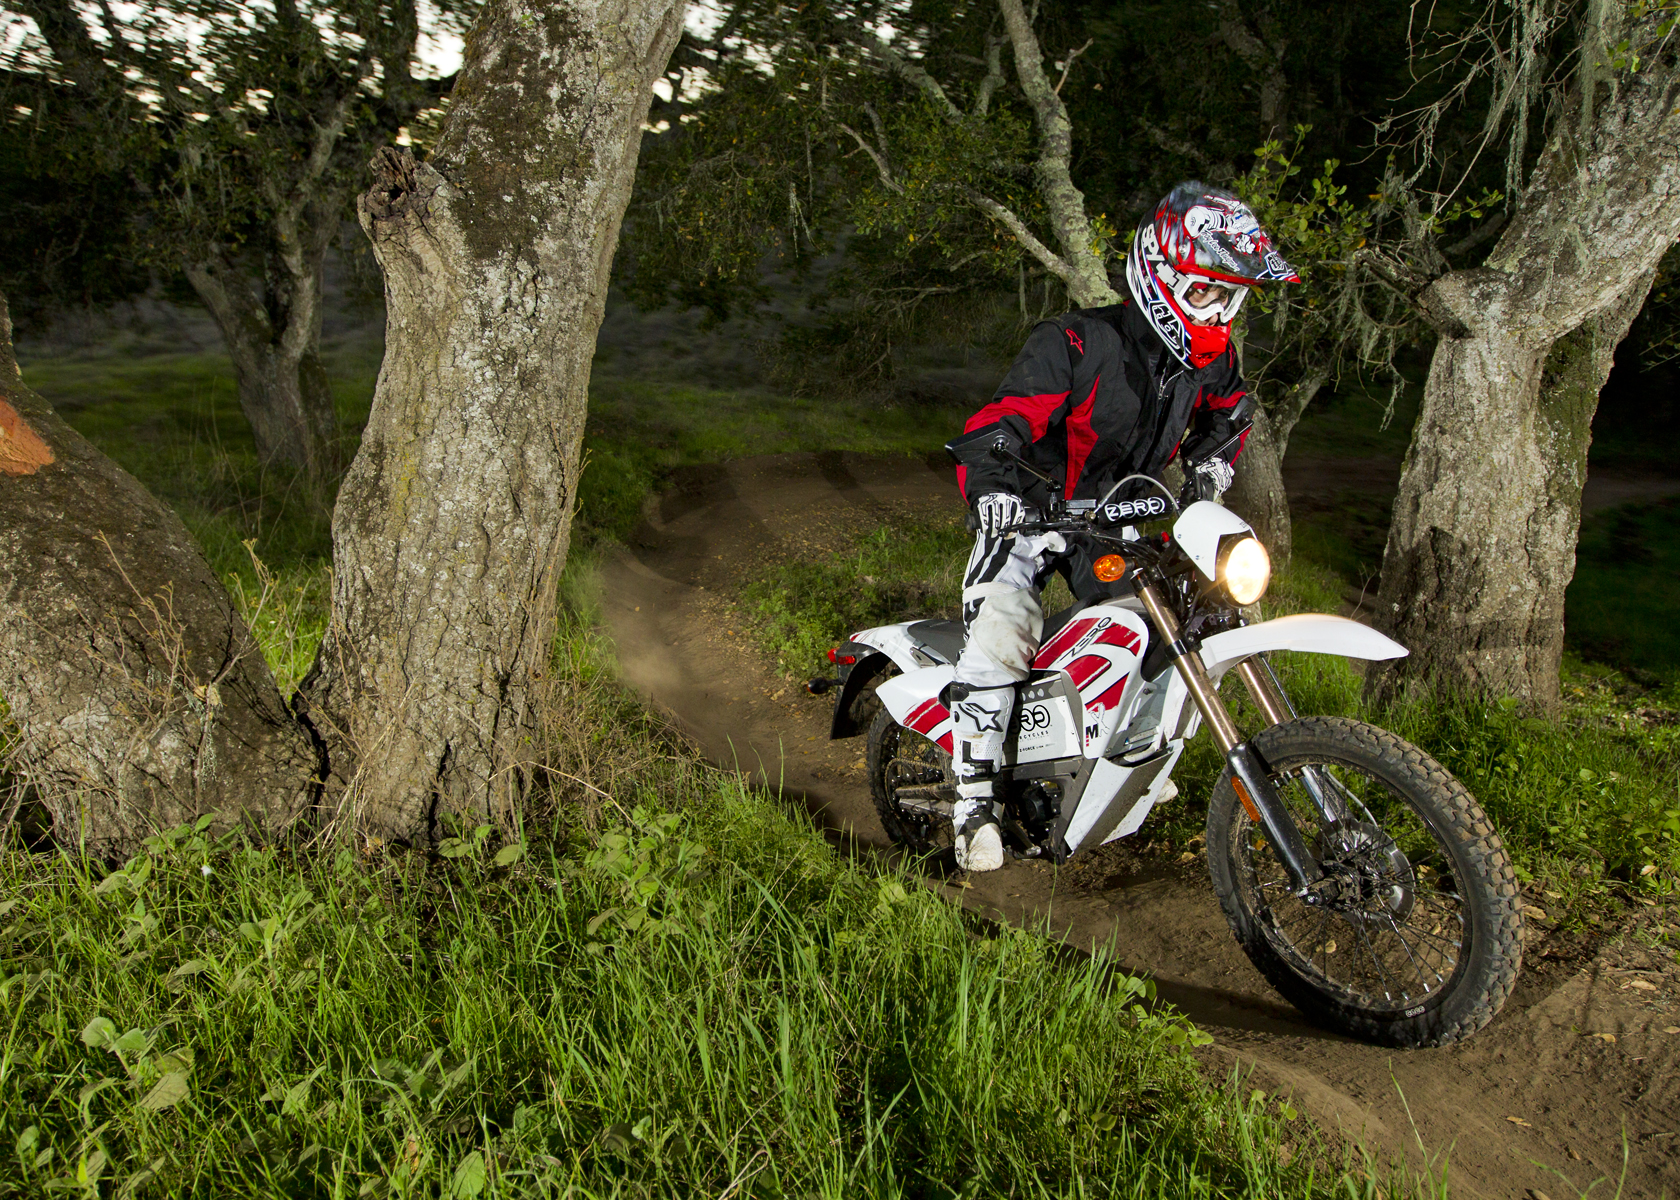 '.2011 Zero MX Electric Motorcycle: Dirt Path Through Oak Trees.'